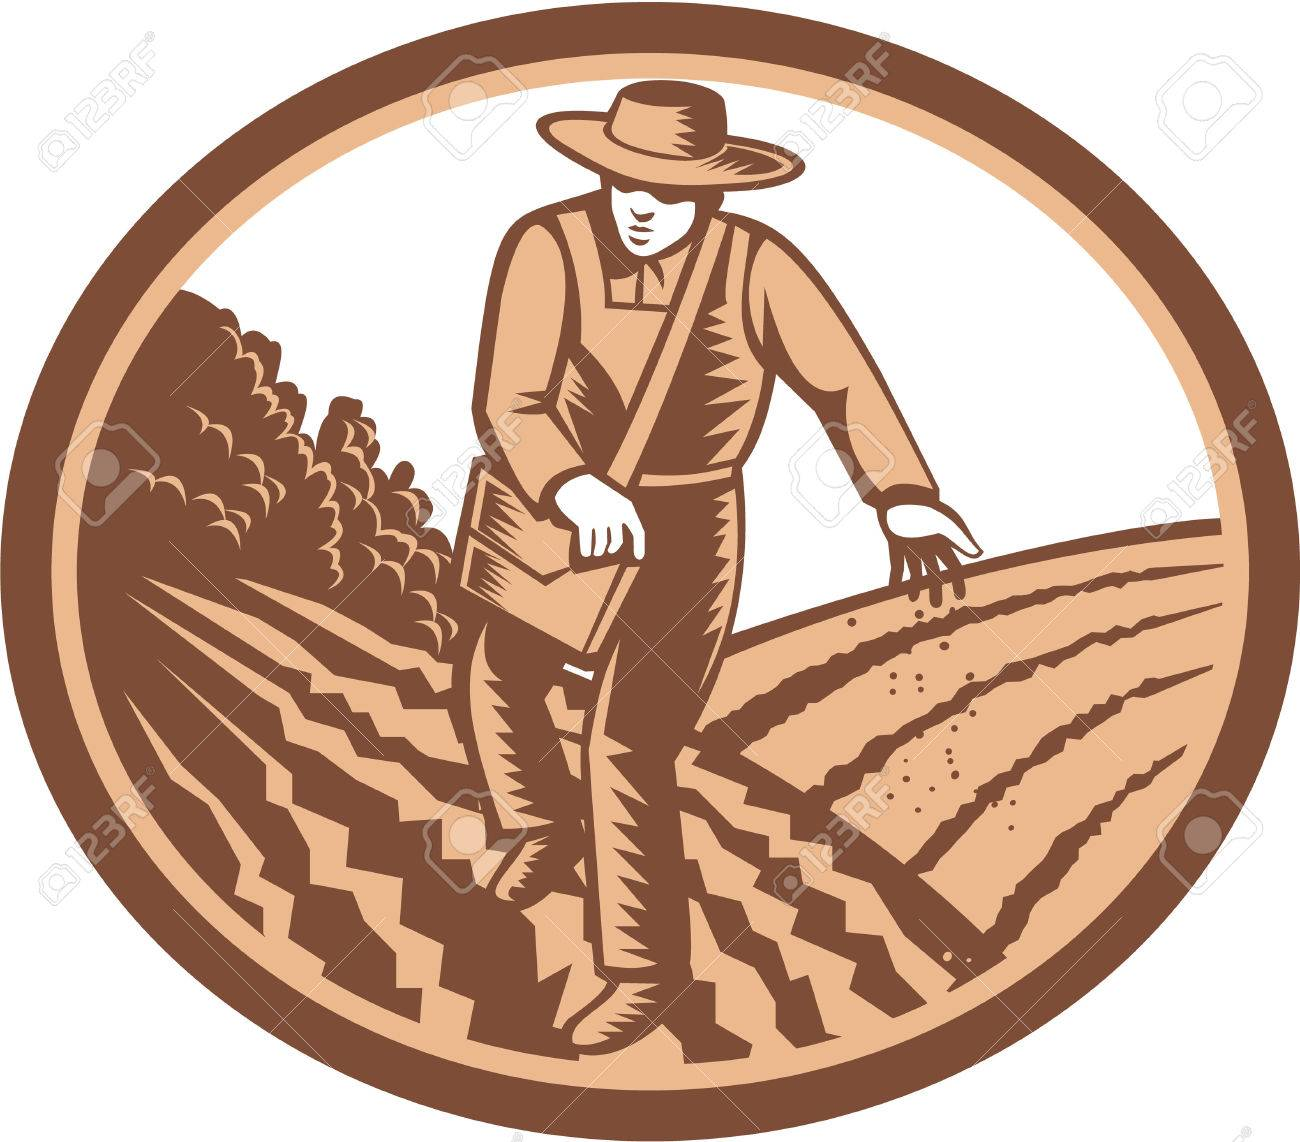 Illustration of organic farmer with satchel bag sowing seeds in farm field set inside oval shape done in retro woodcut style. - 26919213